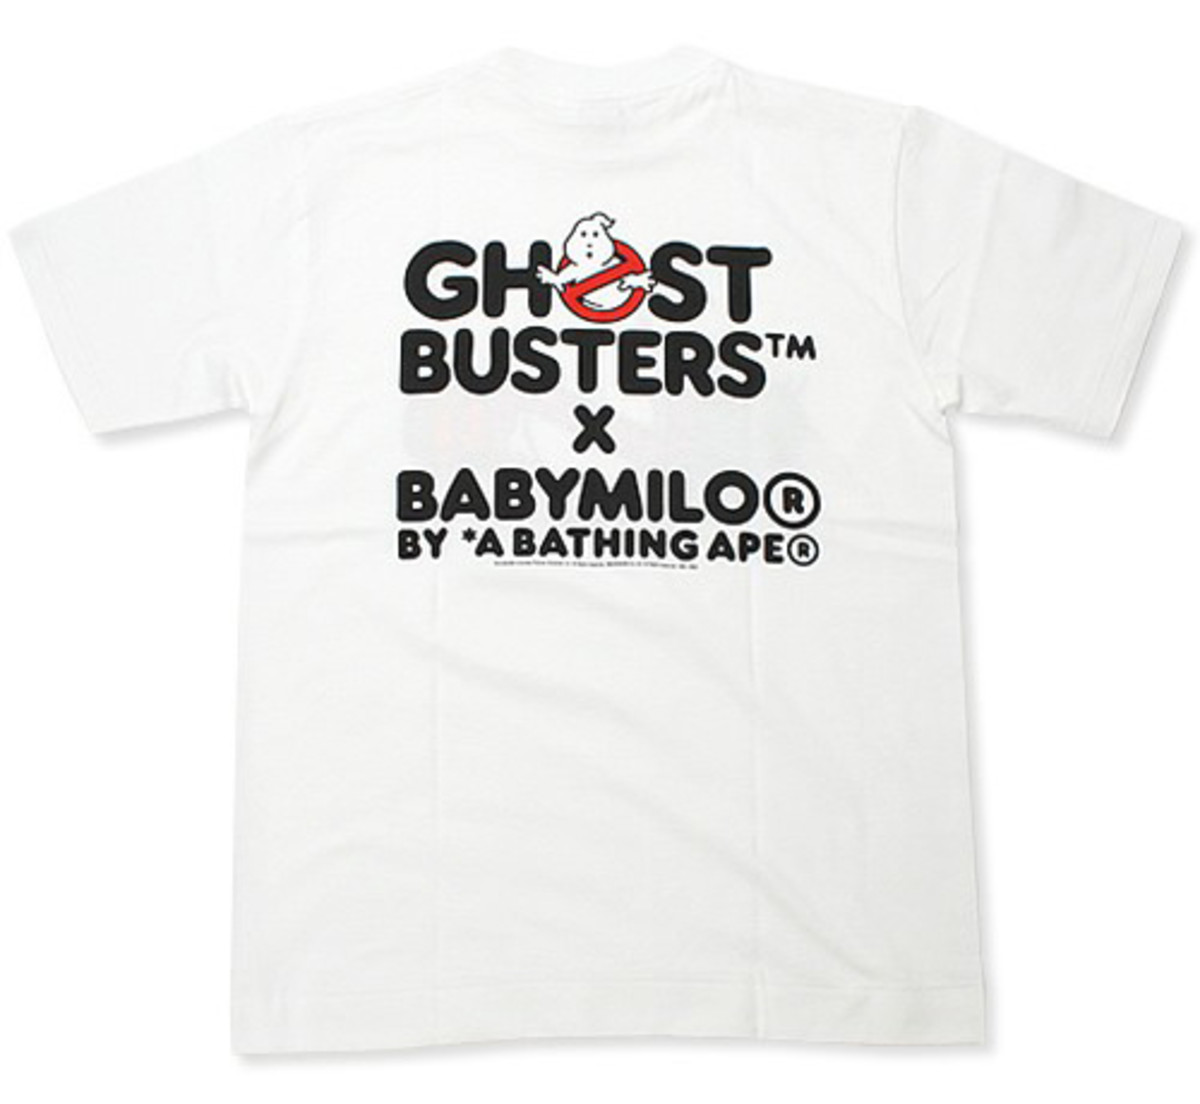 bape-baby-milo-ghostbusters-part-2-tee-02